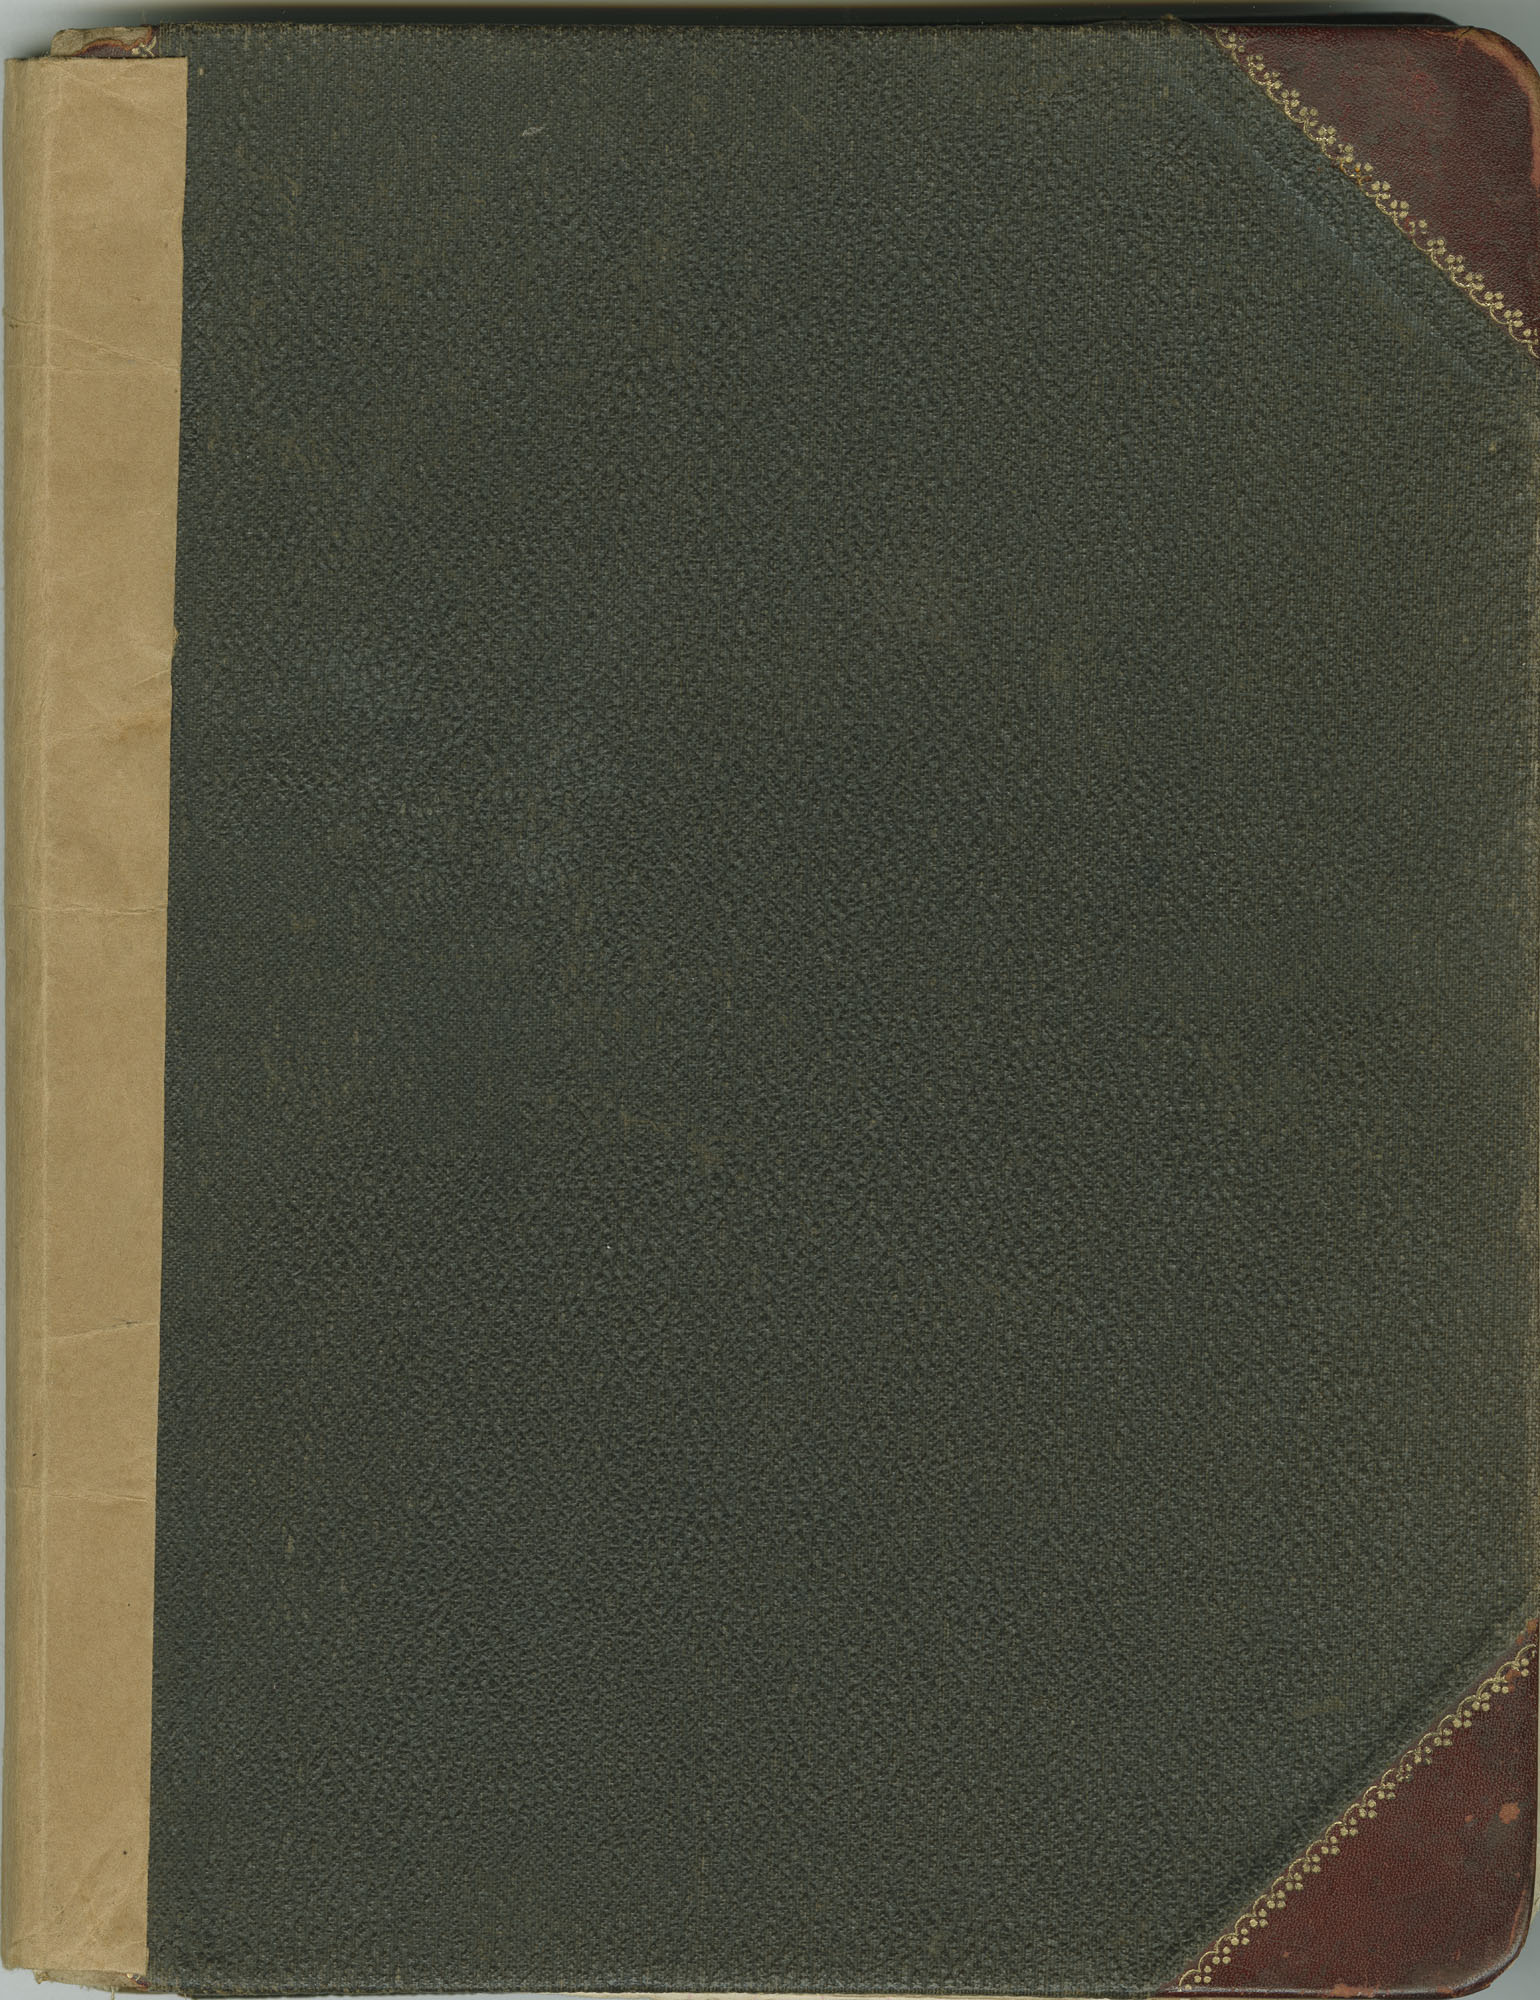 Account Book Records for Daughters of Century Society, 1904-1940, and Minutes for the Brown Fellowship Society, 1940-1975.